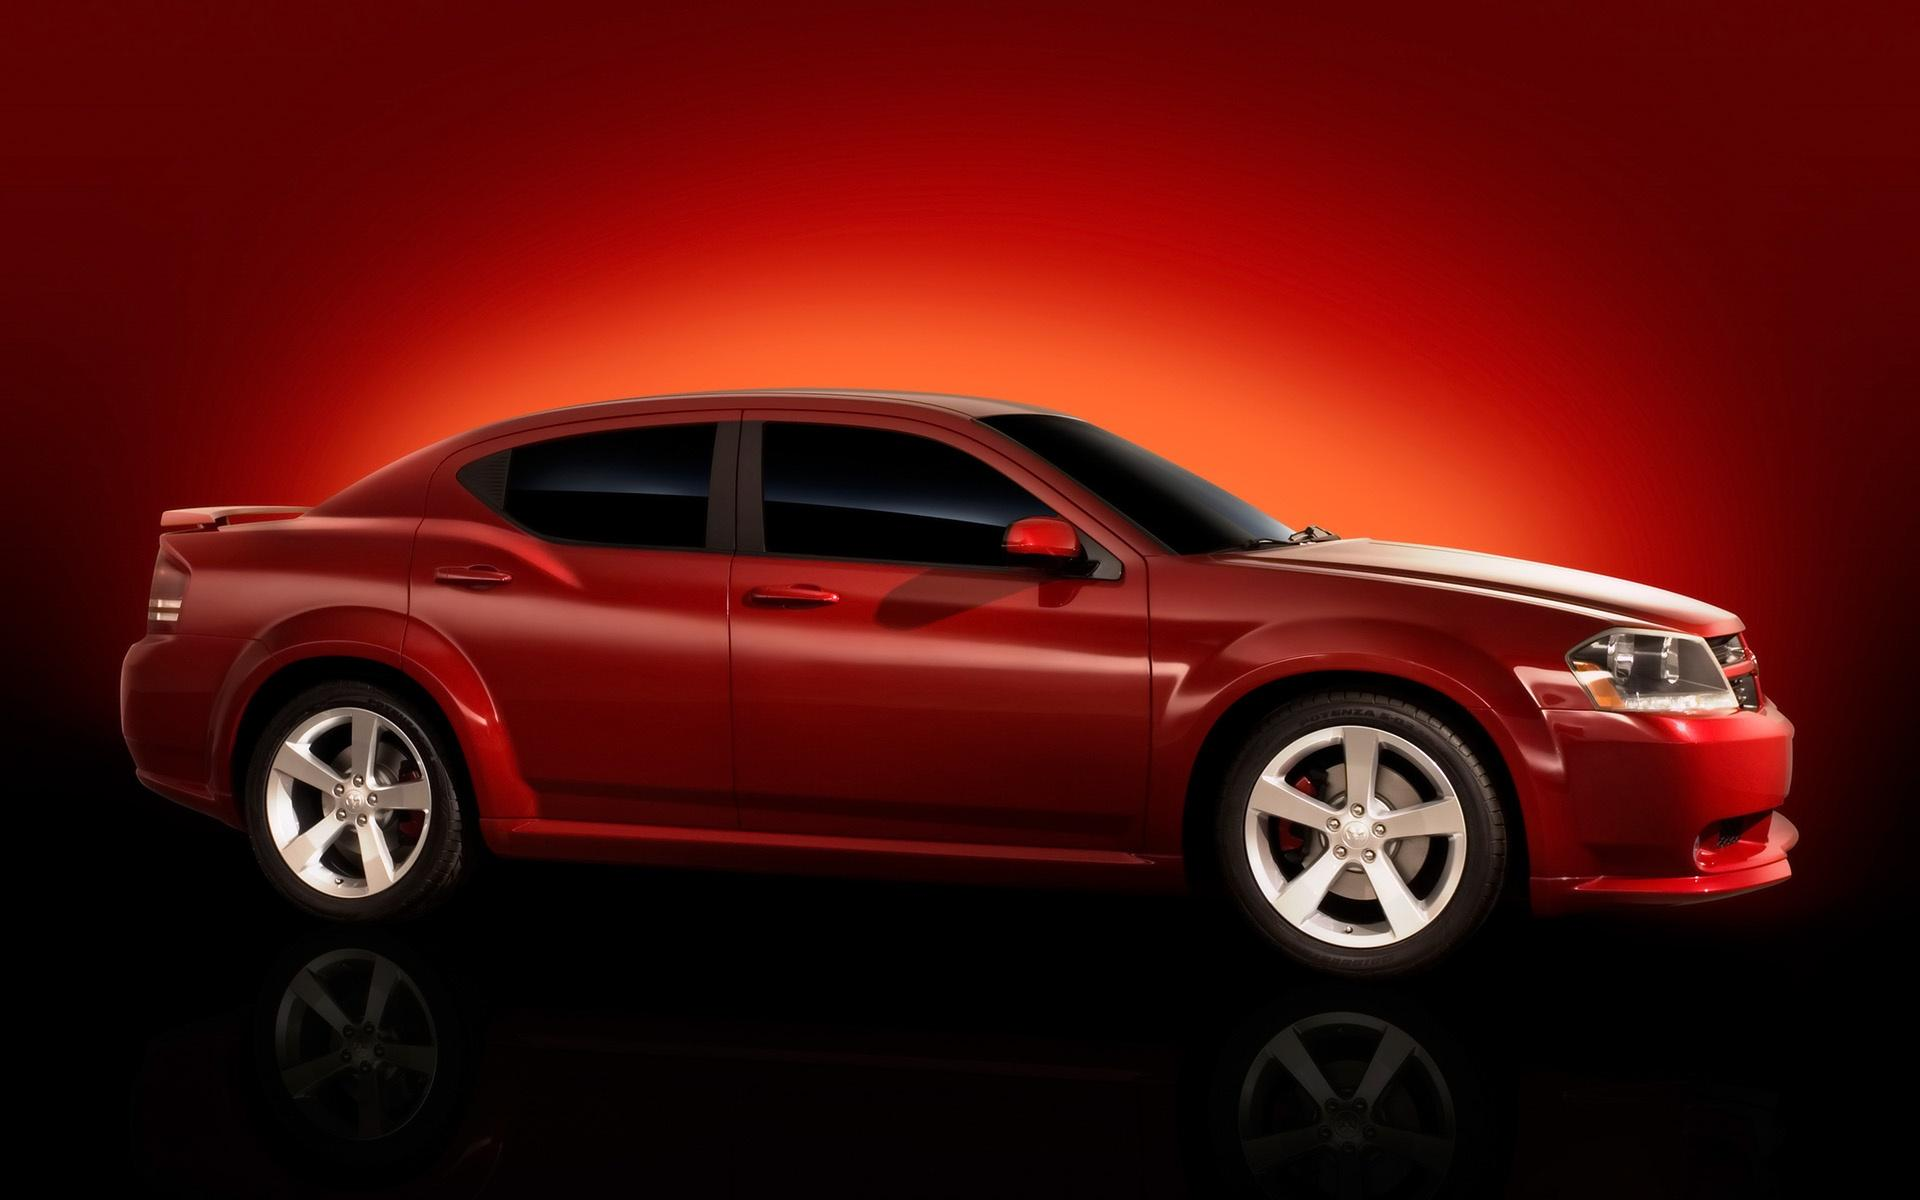 2006 Dodge Avenger Concept Side 1920x1200